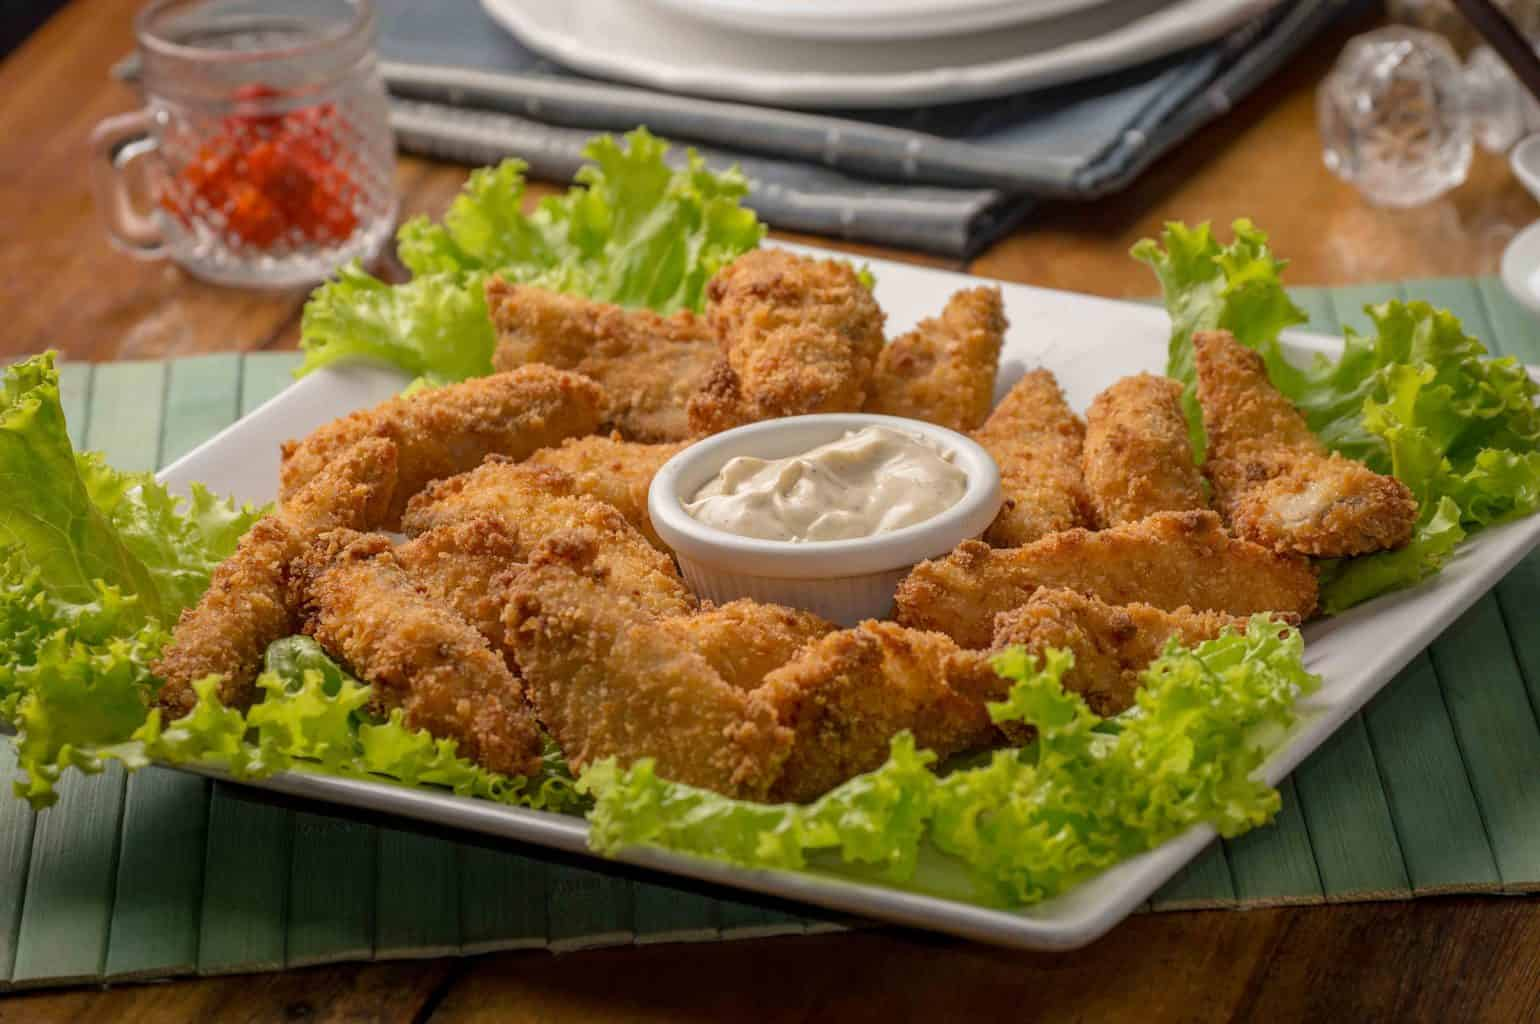 Fried chicken with white sauce at the center